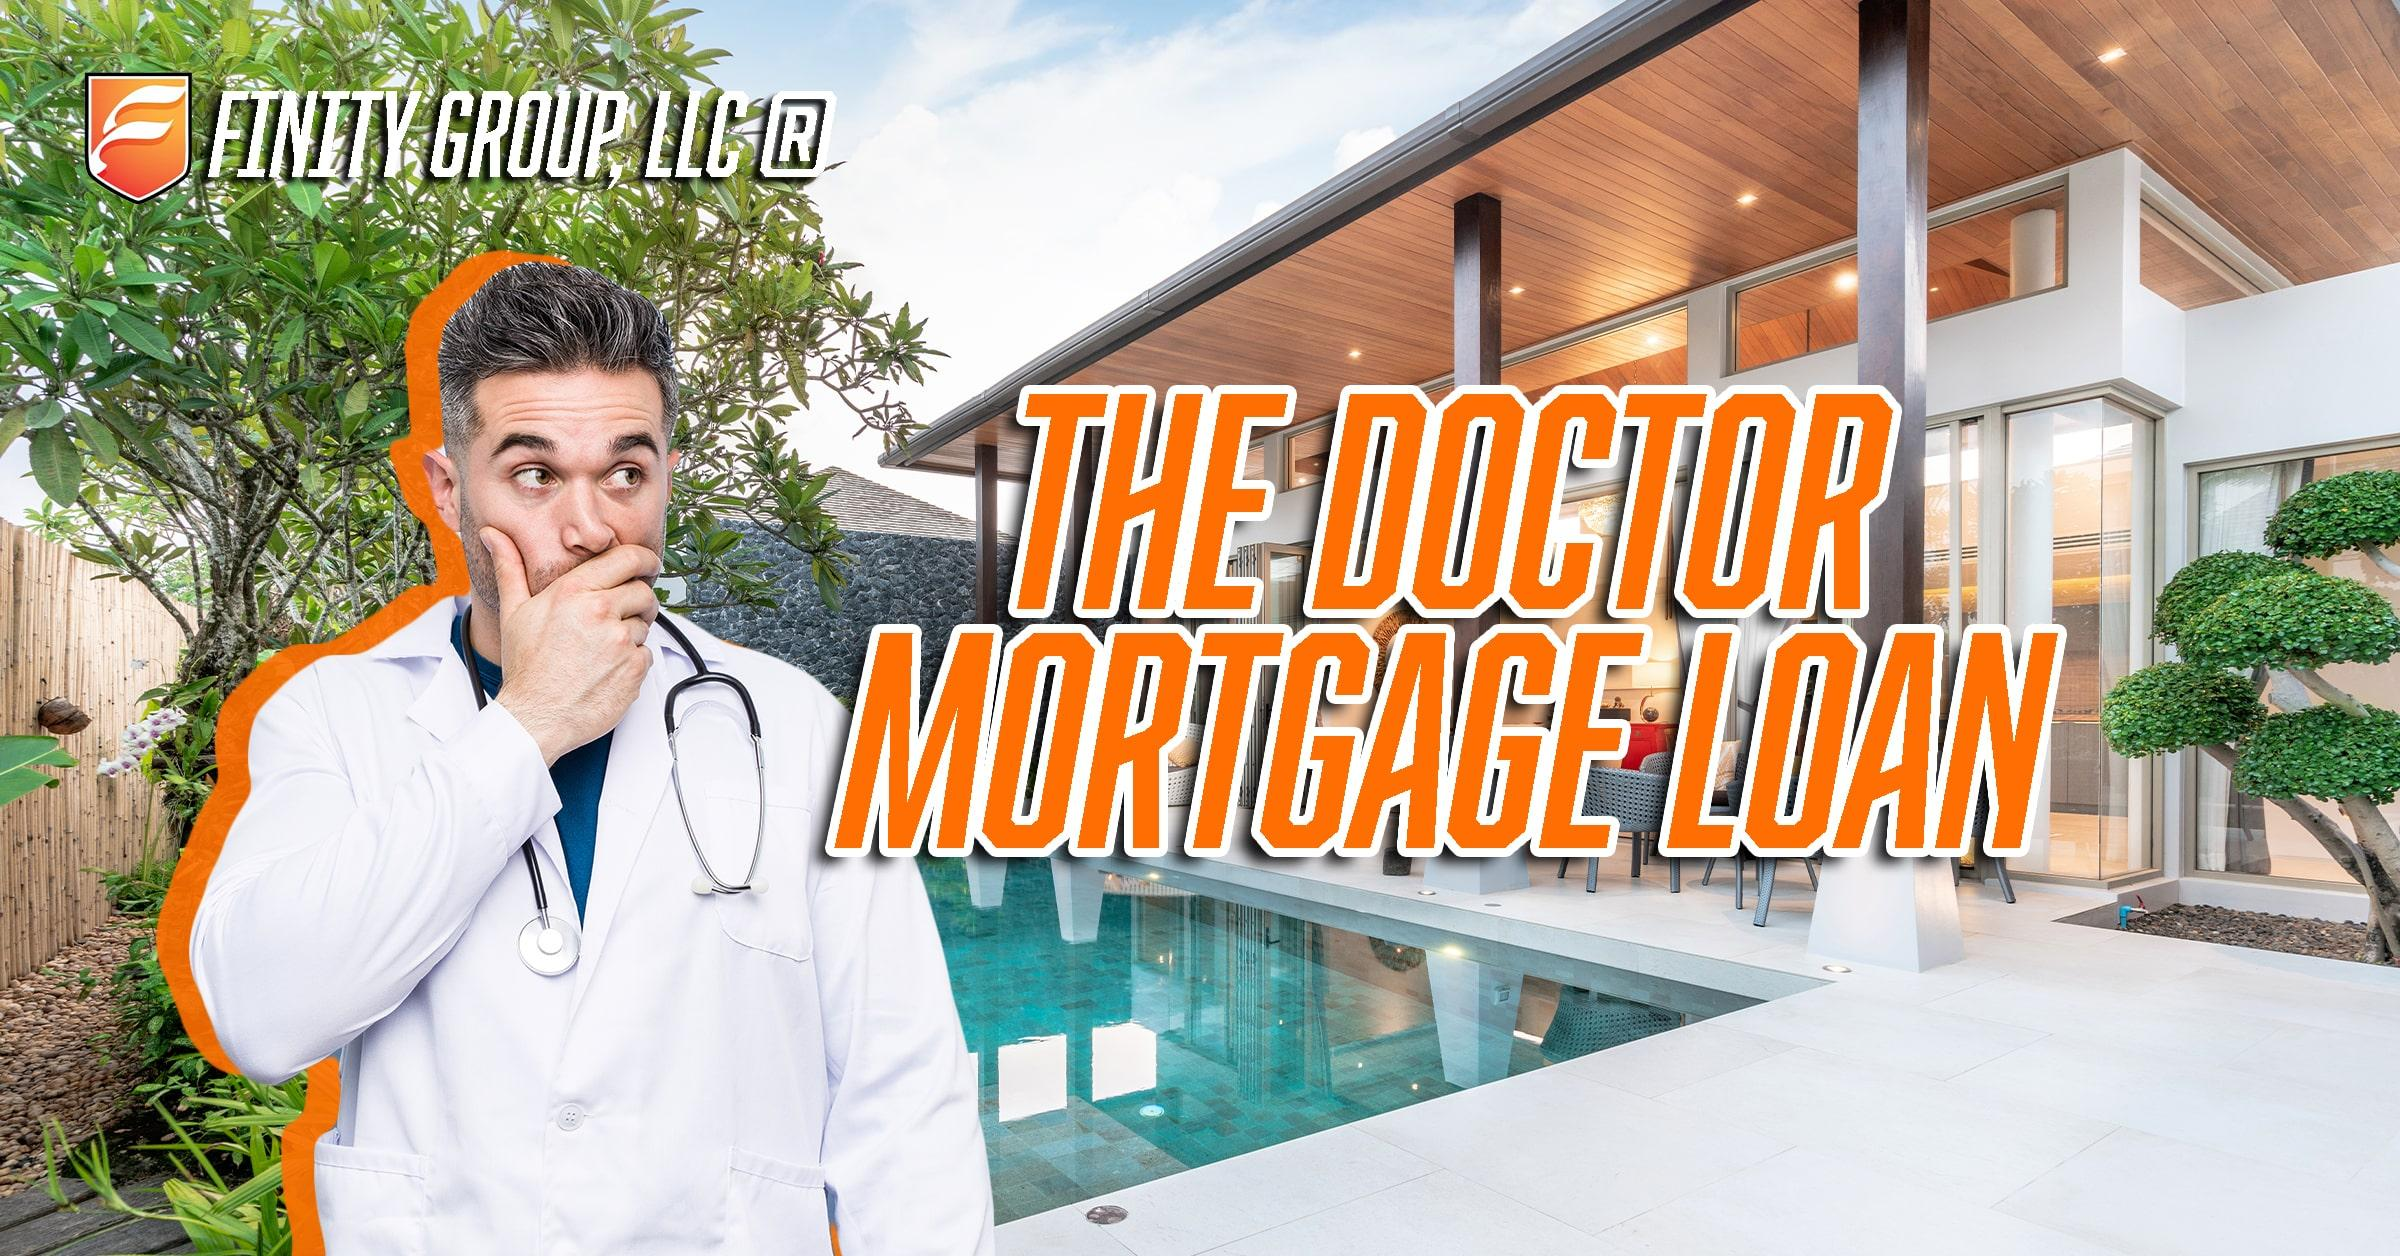 The Doctor Mortgage Loan Finity Group Llc